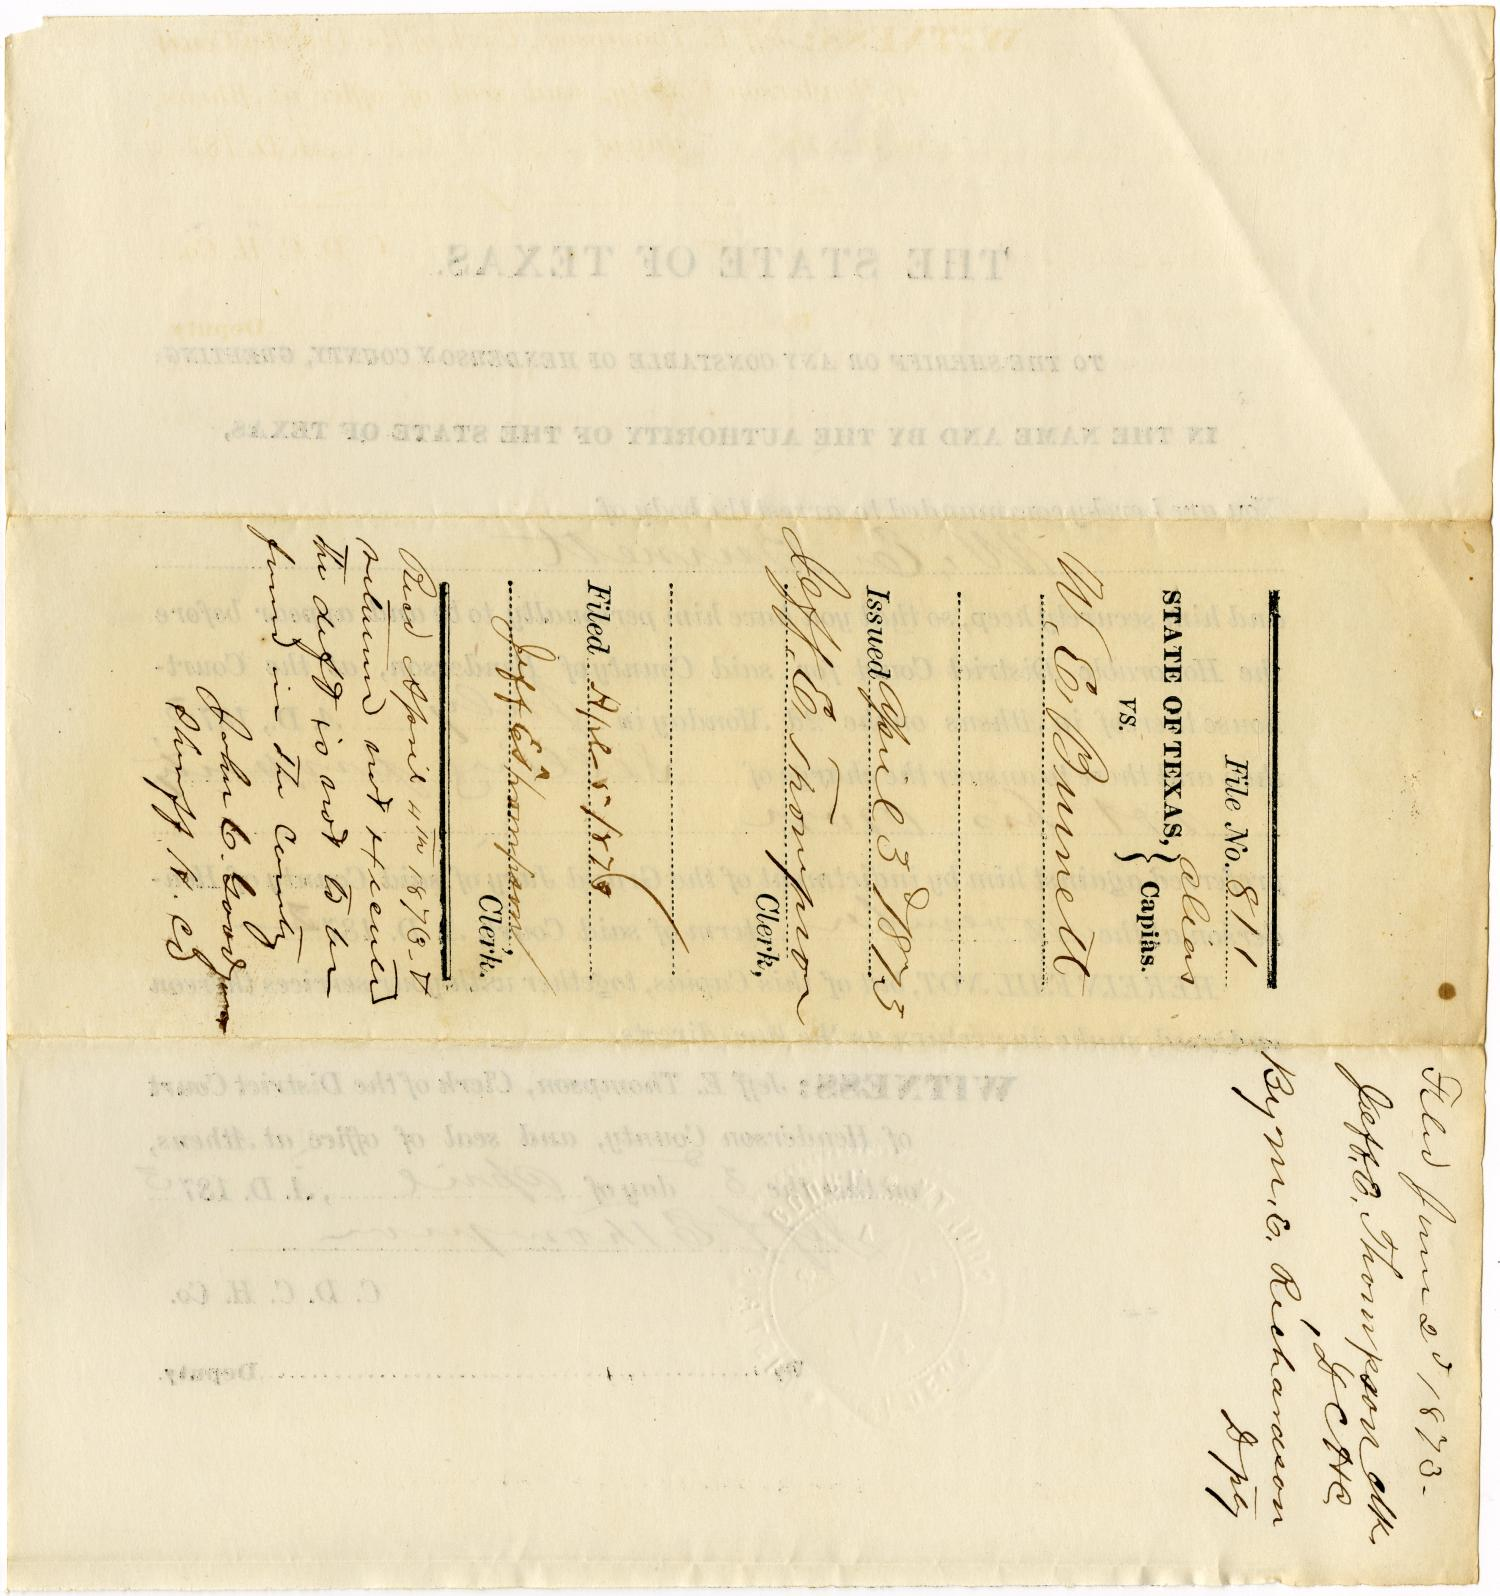 Documents related to the case of The State of Texas vs. William E. Burnett, cause no. 811, 1873                                                                                                      [Sequence #]: 4 of 30